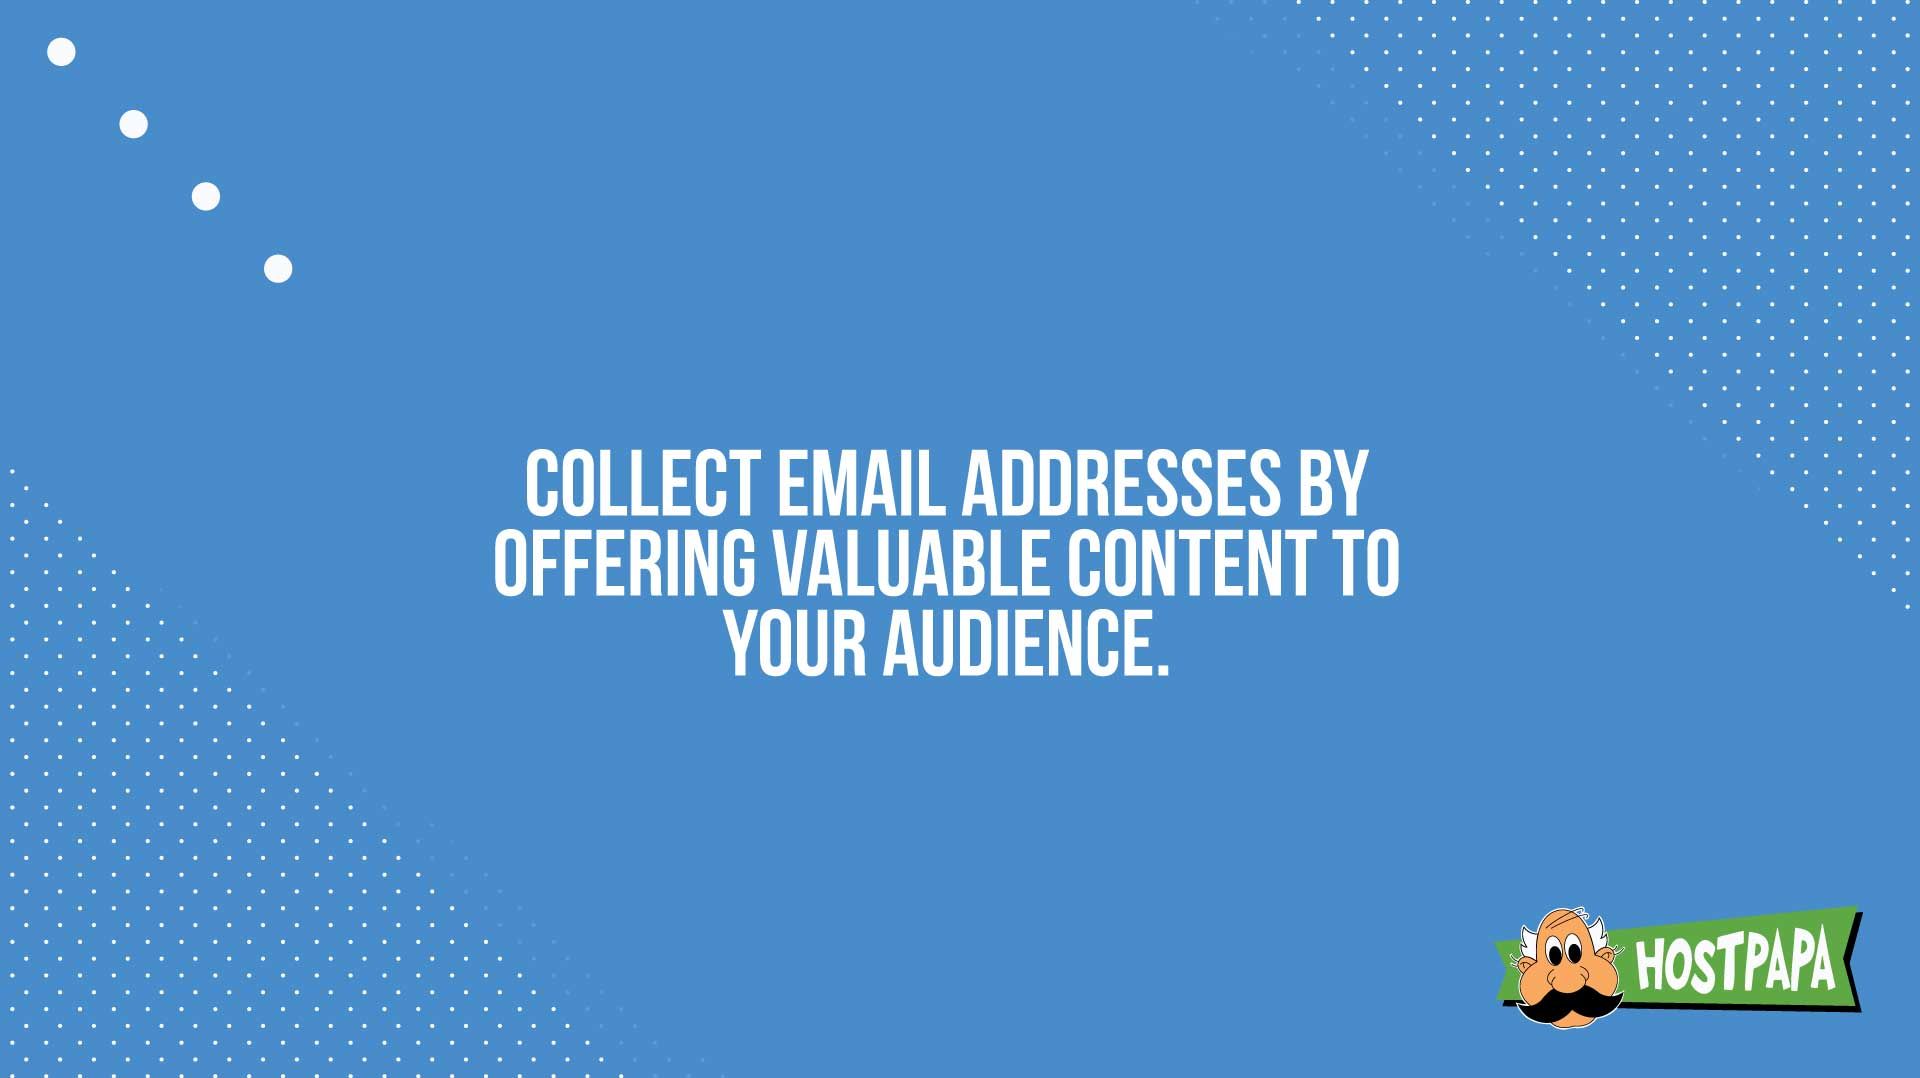 Collect email addresses by offering caluable content to your audience.